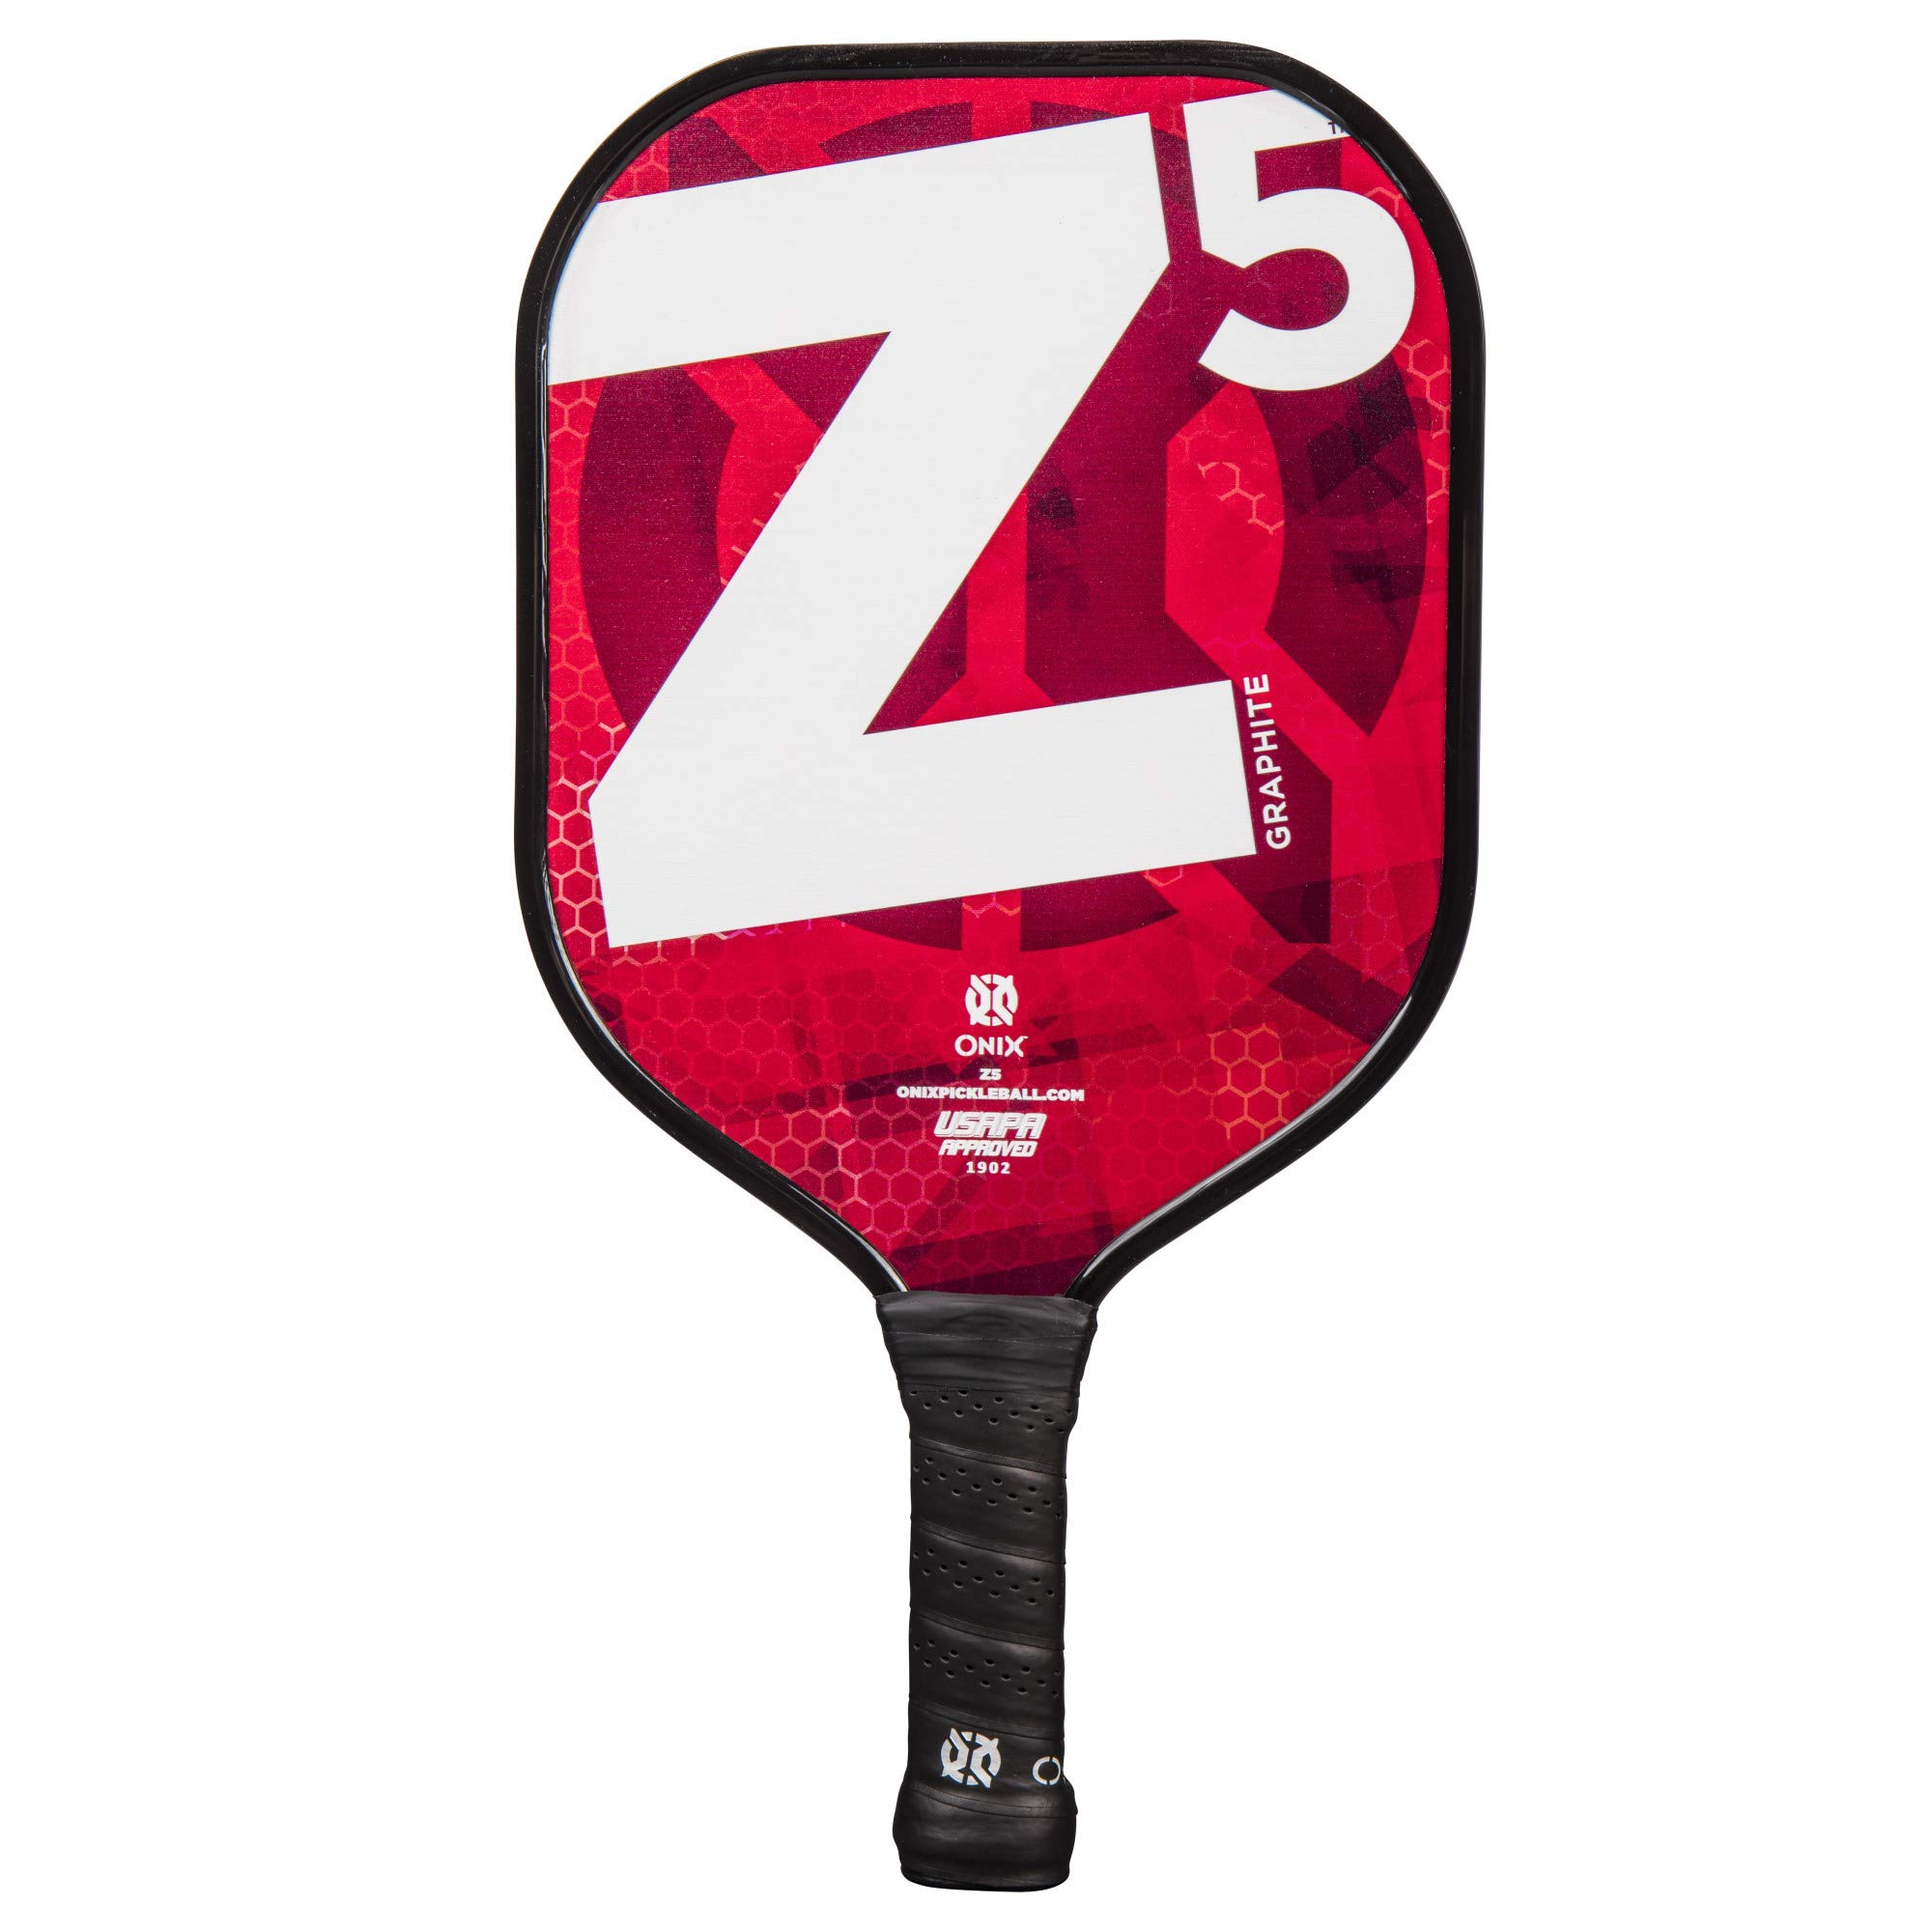 Onix Graphite Z5 Graphite Carbon Fiber Pickleball Paddle with Cushion Comfort Grip by Onix